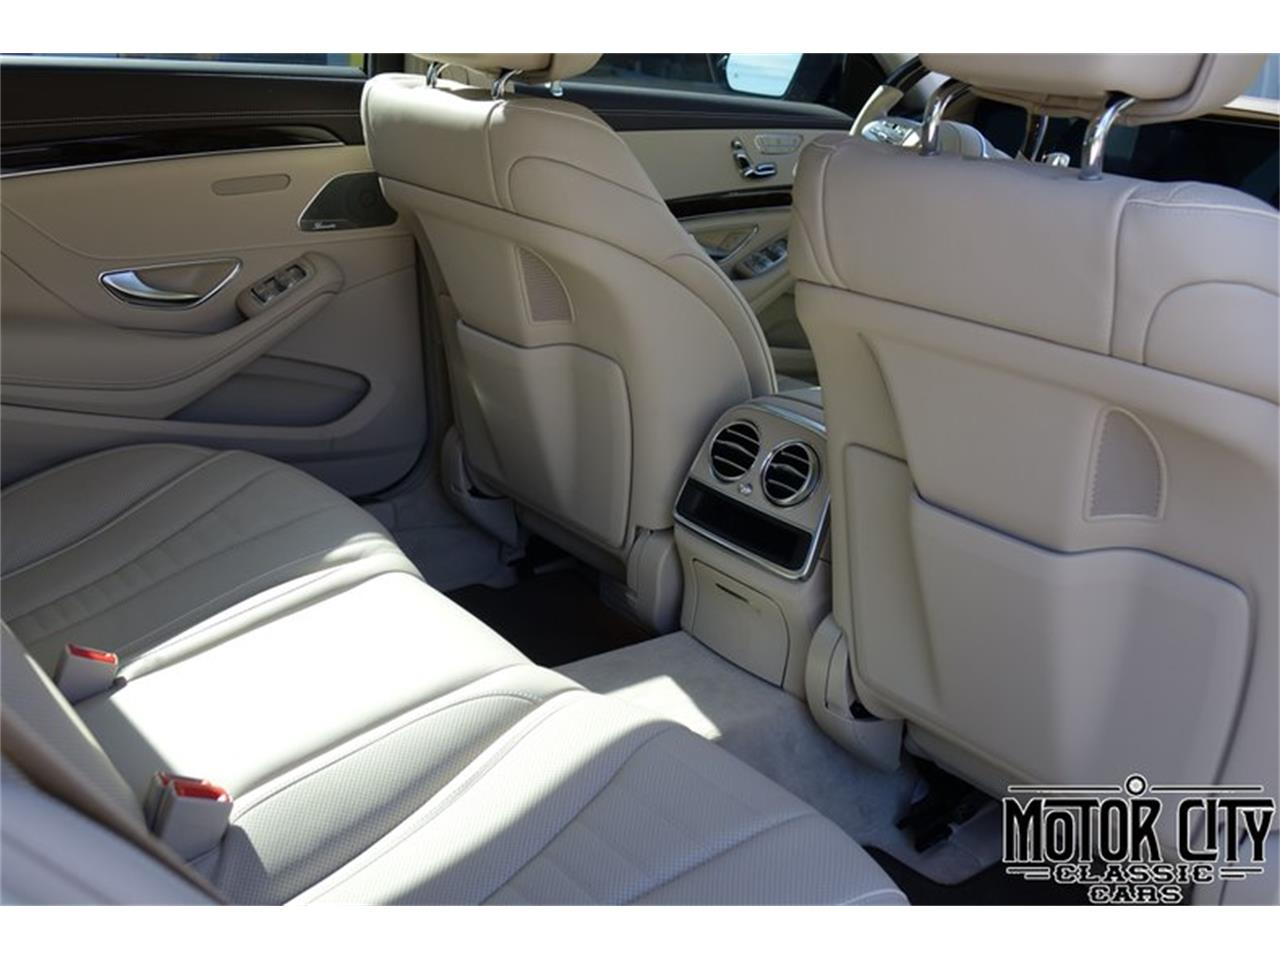 2020 Mercedes-Benz S560 (CC-1390830) for sale in Vero Beach, Florida